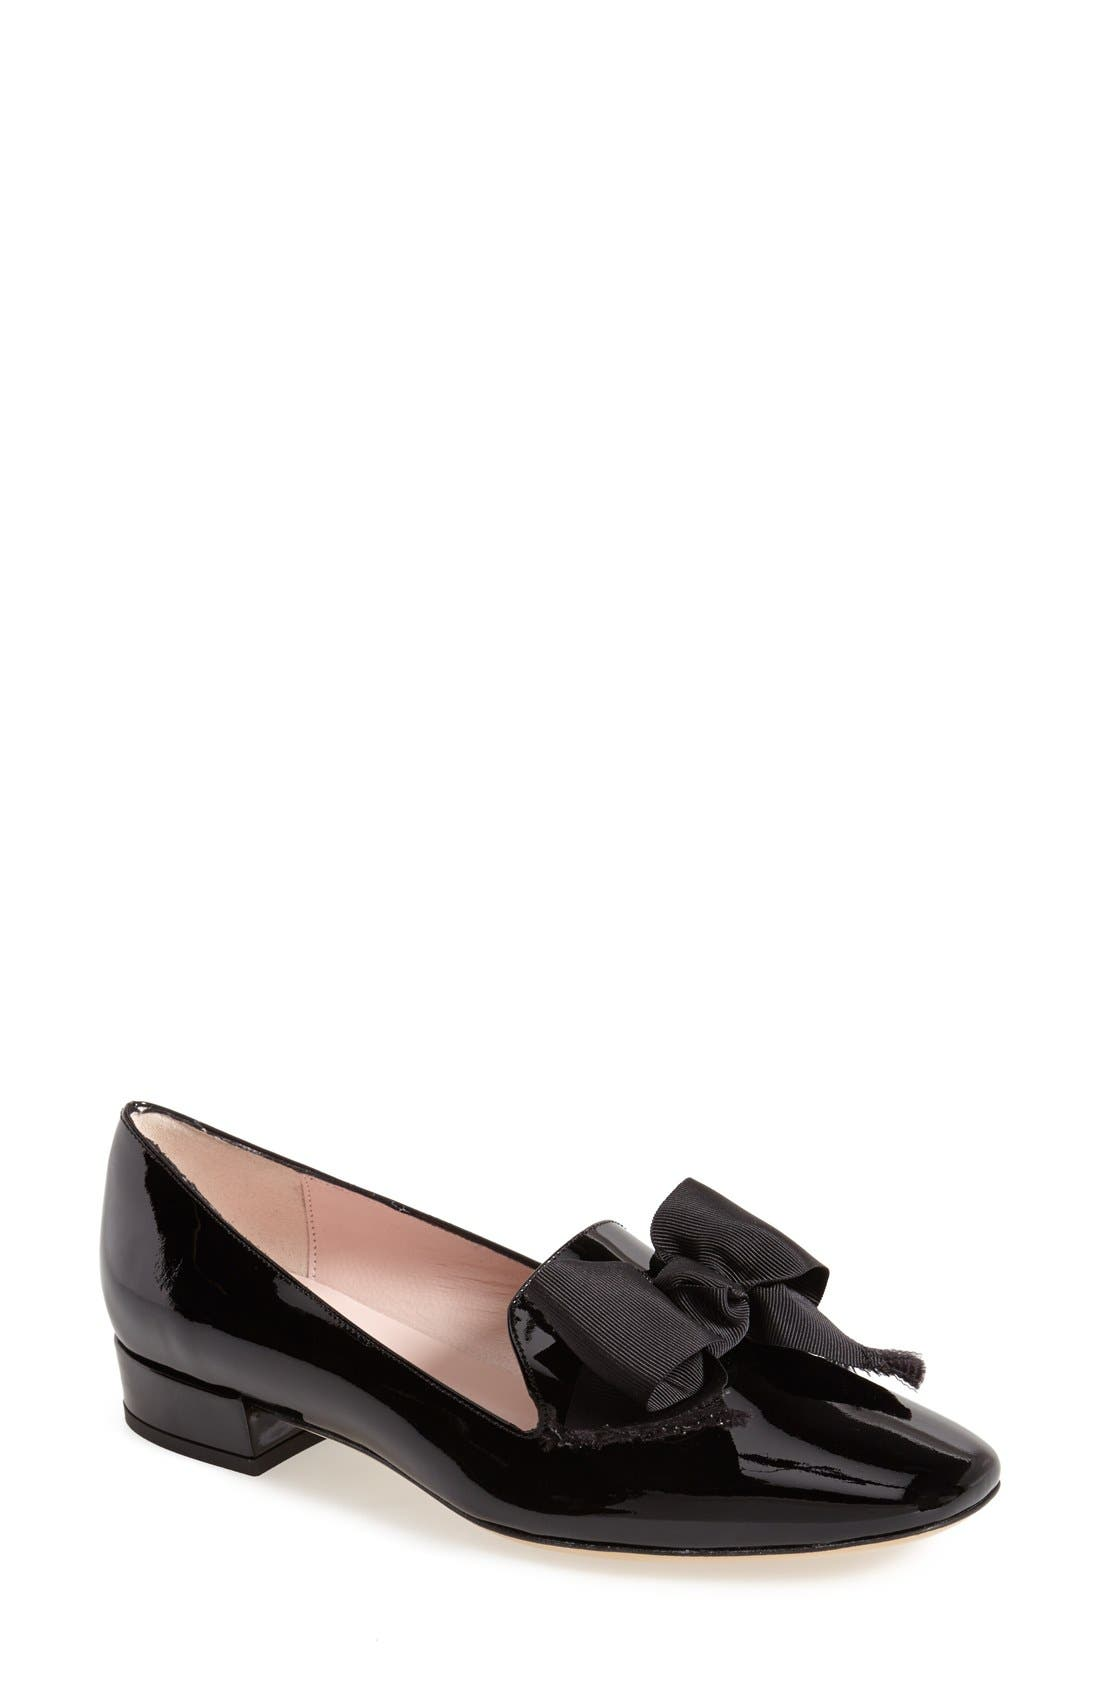 KATE SPADE NEW YORK 'gino' loafer, Main, color, 002